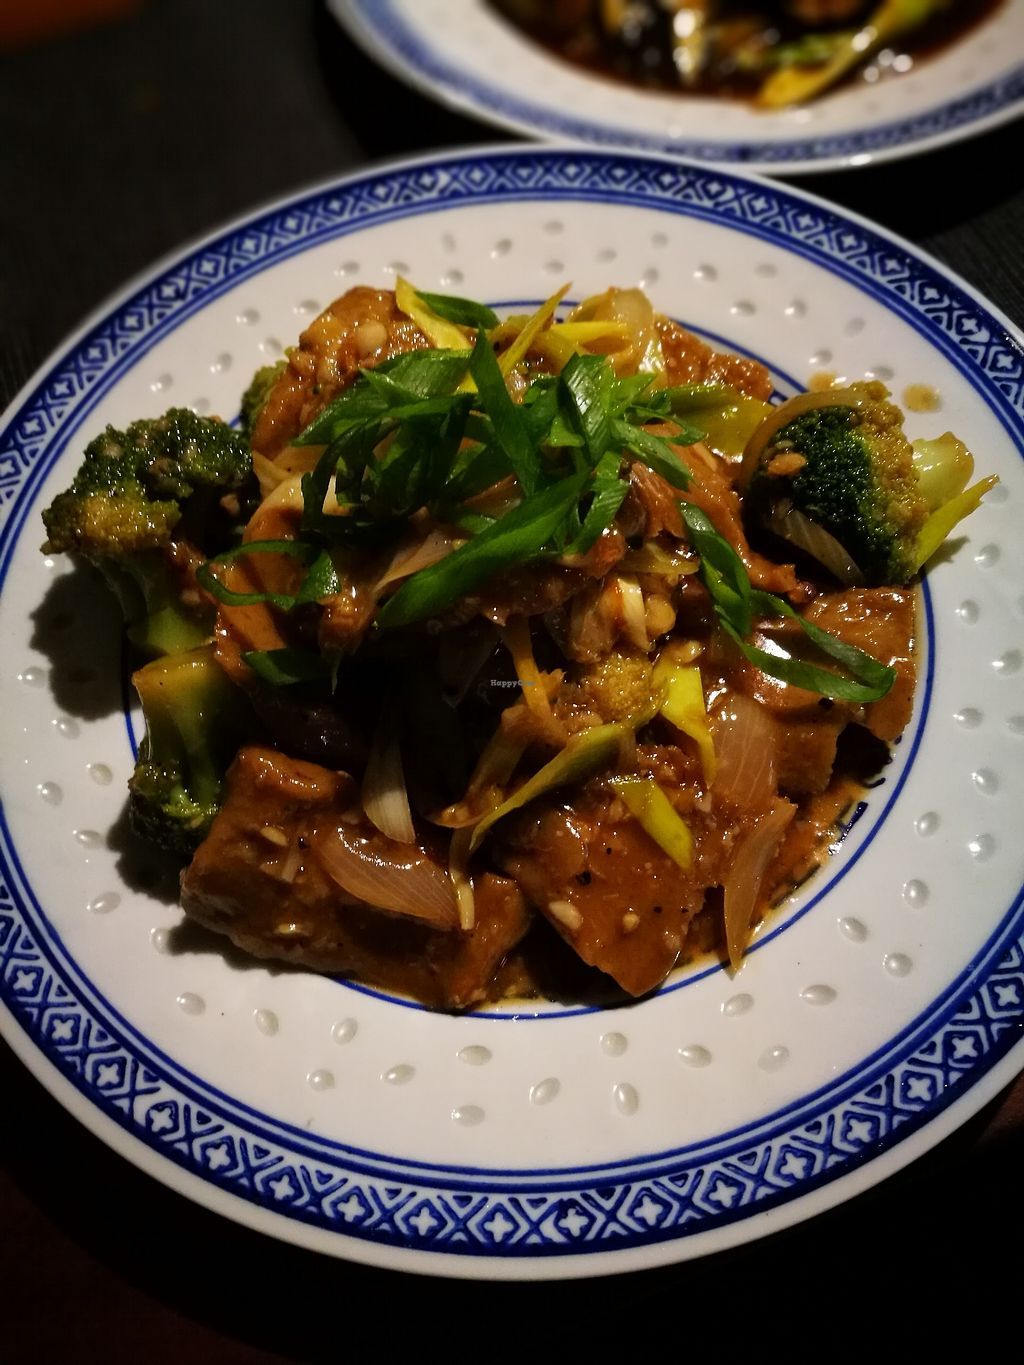 "Photo of Pod Norenami  by <a href=""/members/profile/k-girl80"">k-girl80</a> <br/>faux-beef main courses with  broccoli <br/> October 12, 2017  - <a href='/contact/abuse/image/37682/314532'>Report</a>"